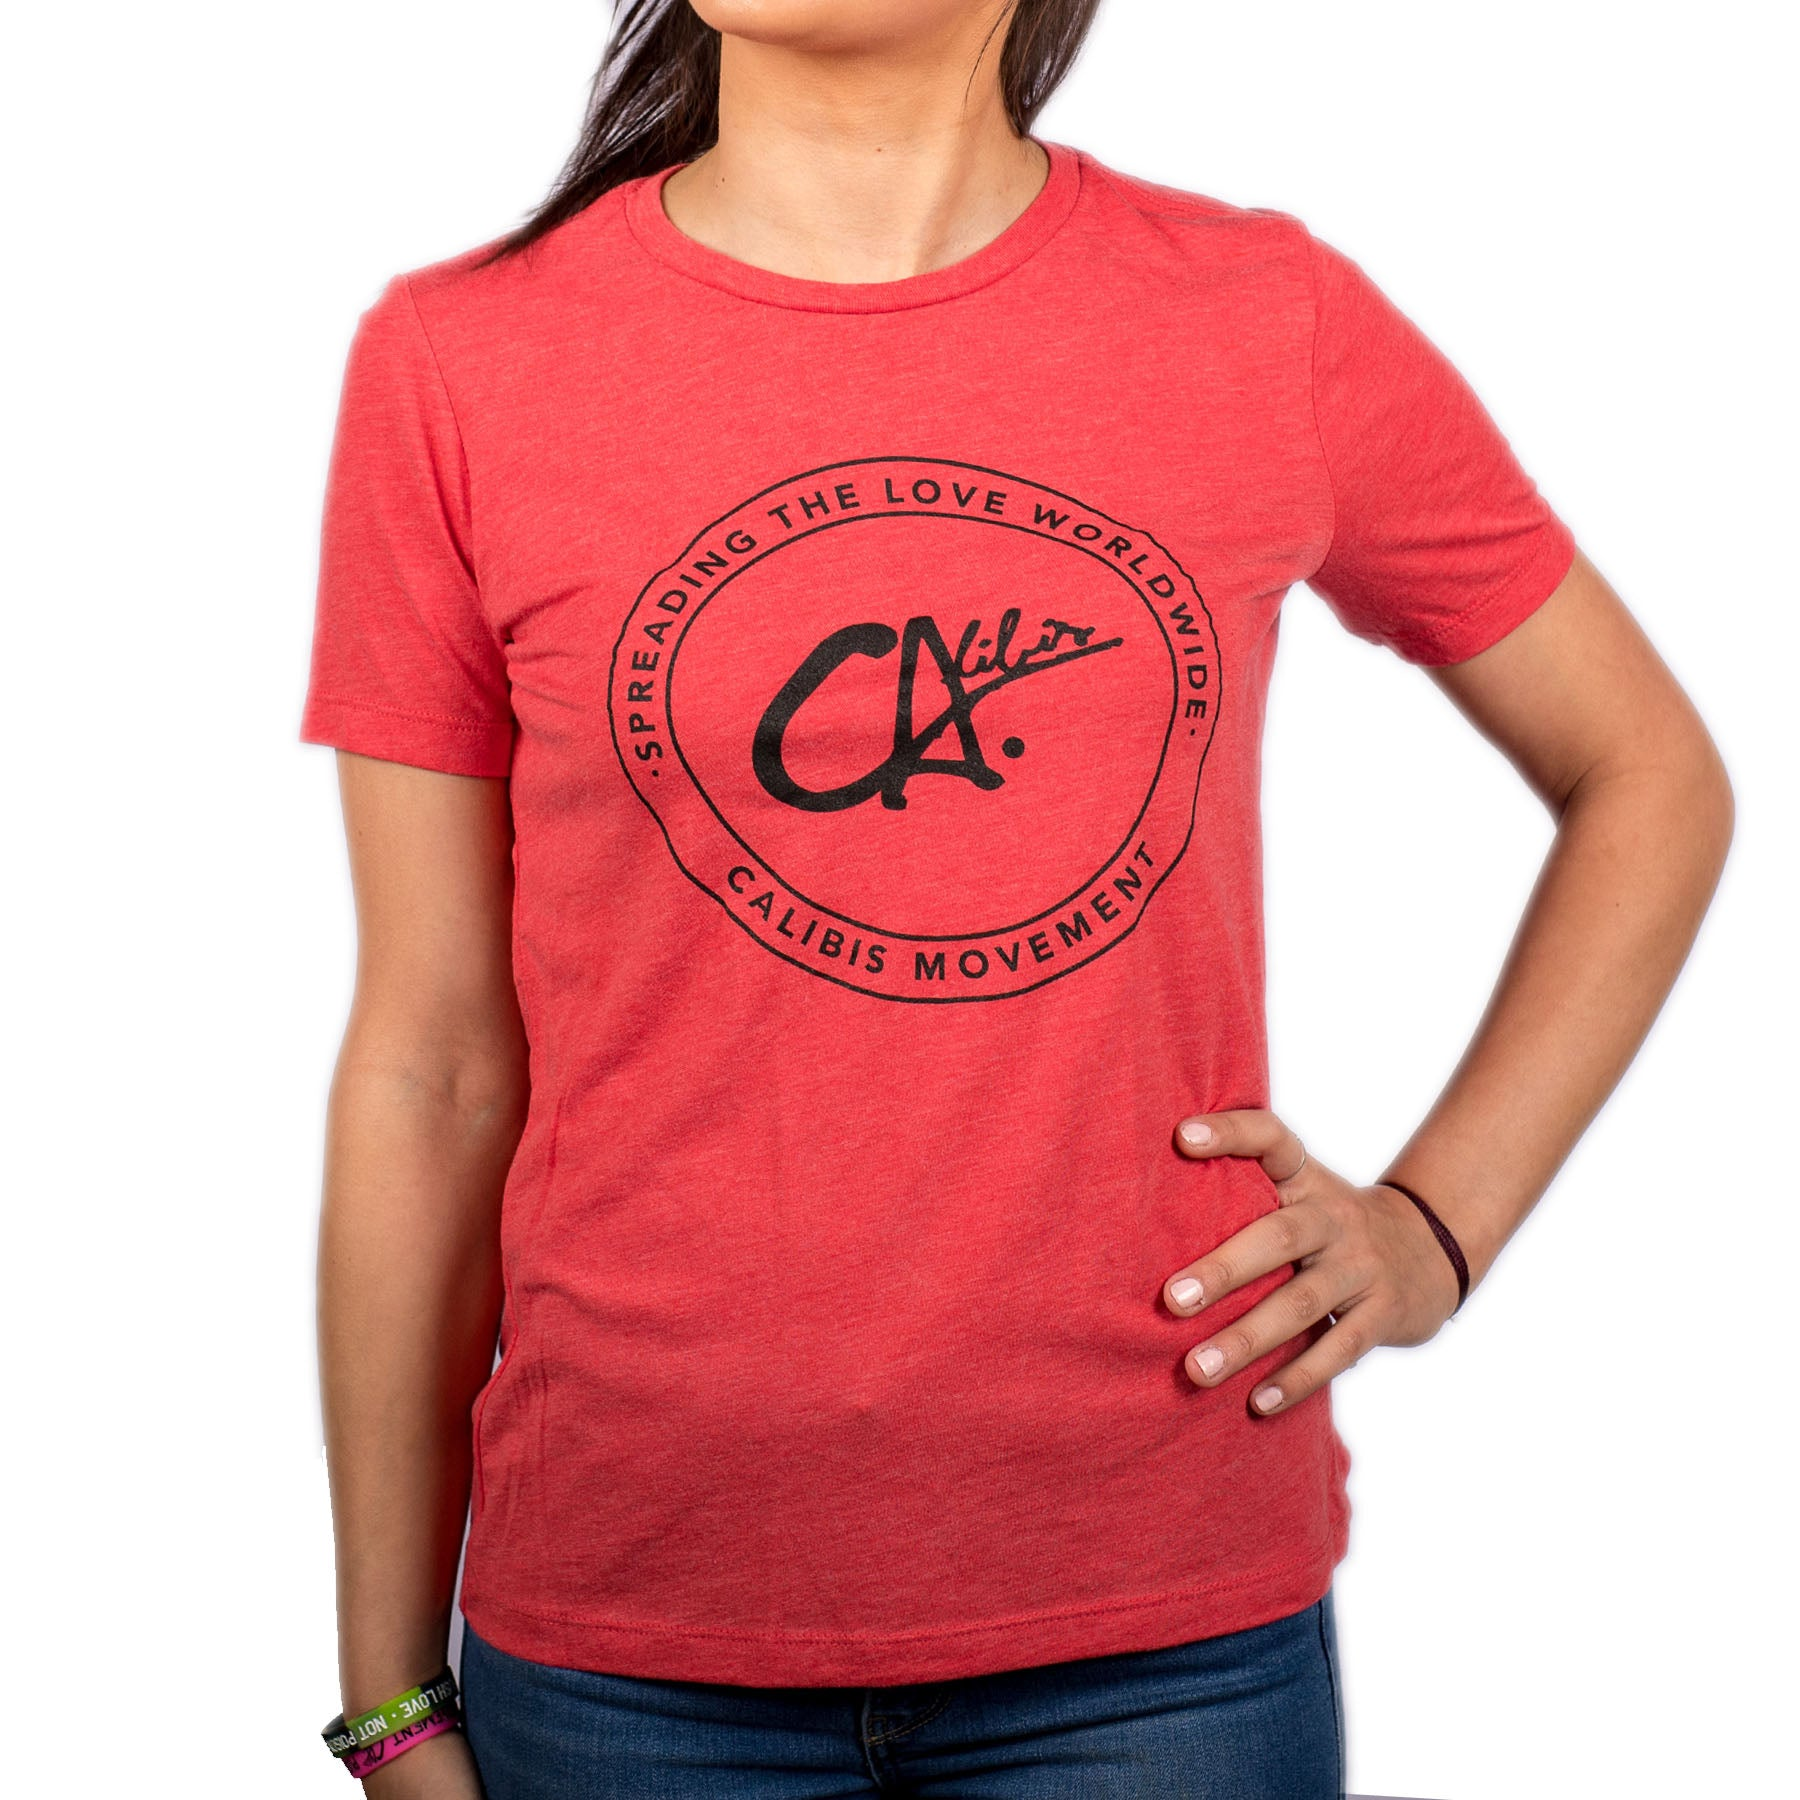 Worldwide Ladies Relaxed Tee by Calibis Clothing